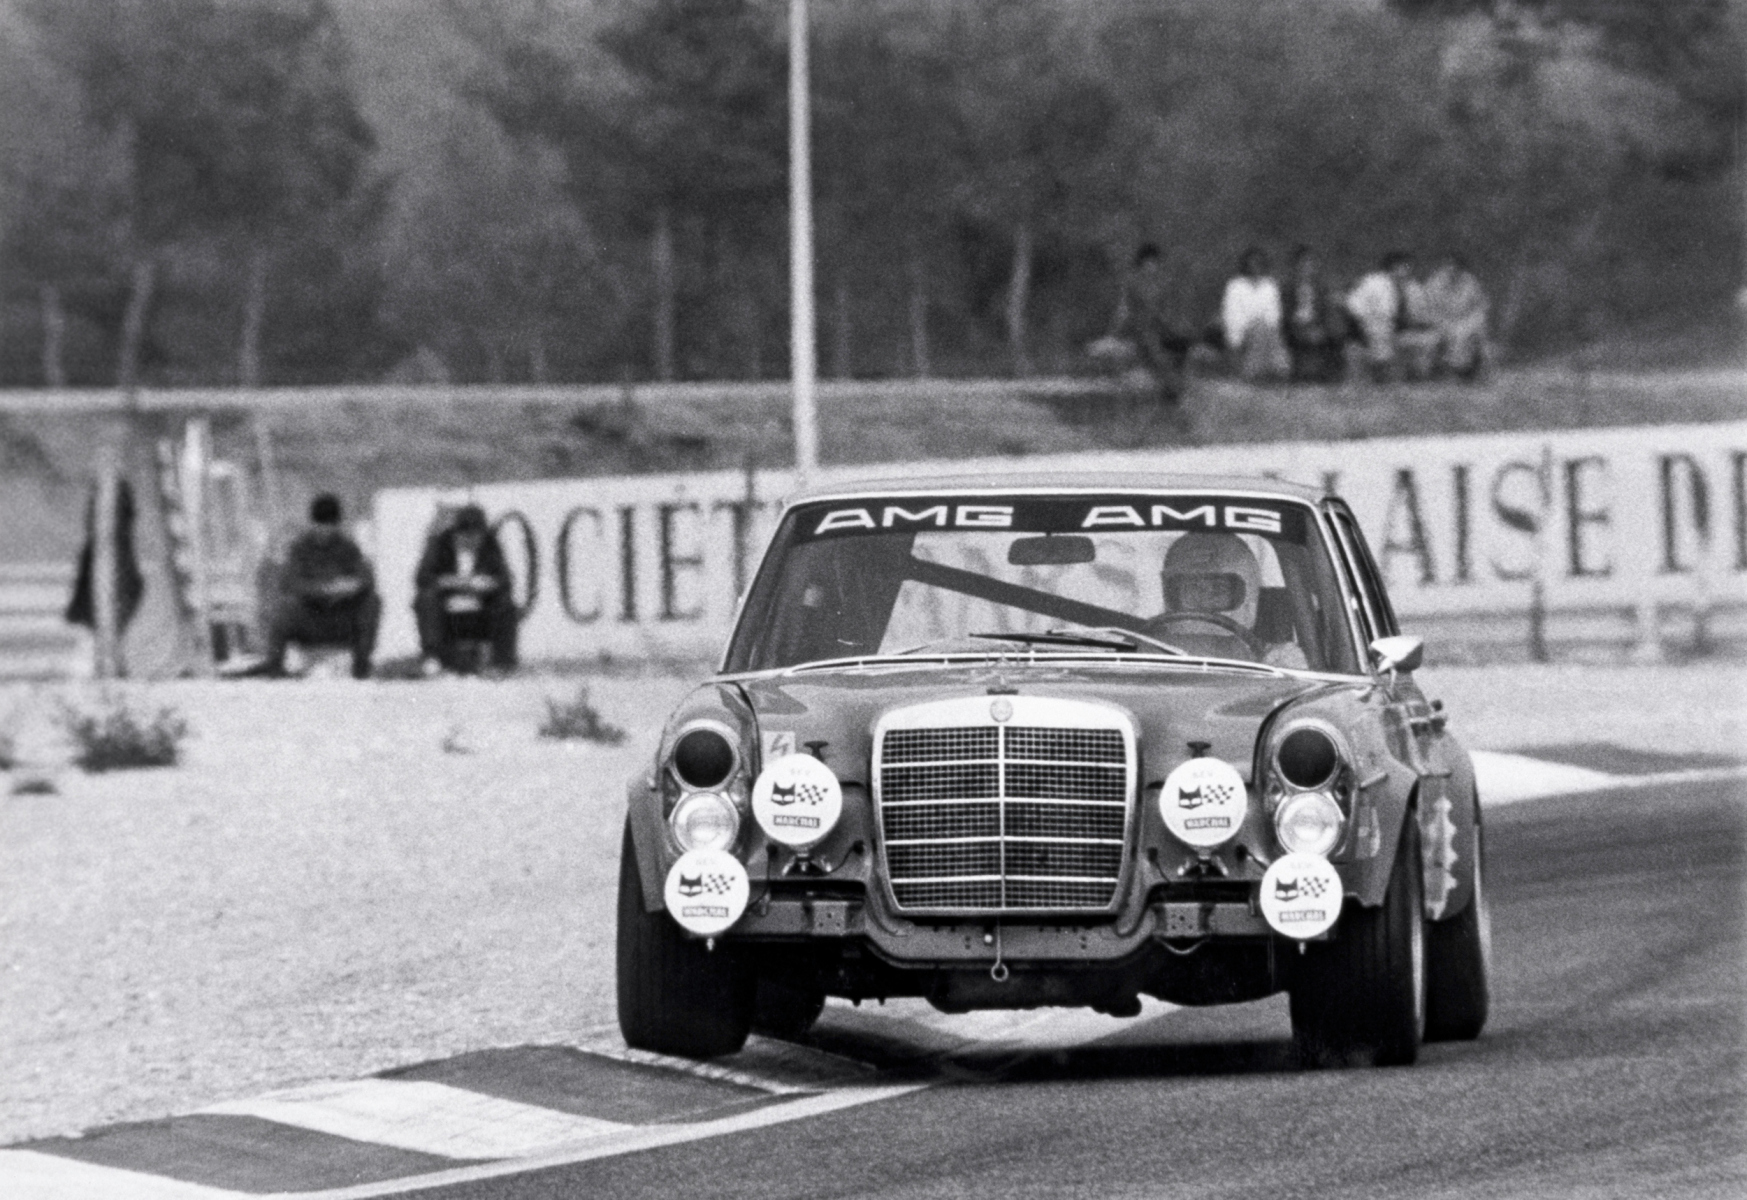 AMG 300 SEL 6.8 racing touring car based on the Mercedes-Benz 300 SEL 6.3 (W 109) luxury saloon. At the 24-hour race in Spa-Francorchamps in 1971, Hans Heyer and Clemens Schickentanz attained second place overall, causing a sensation.